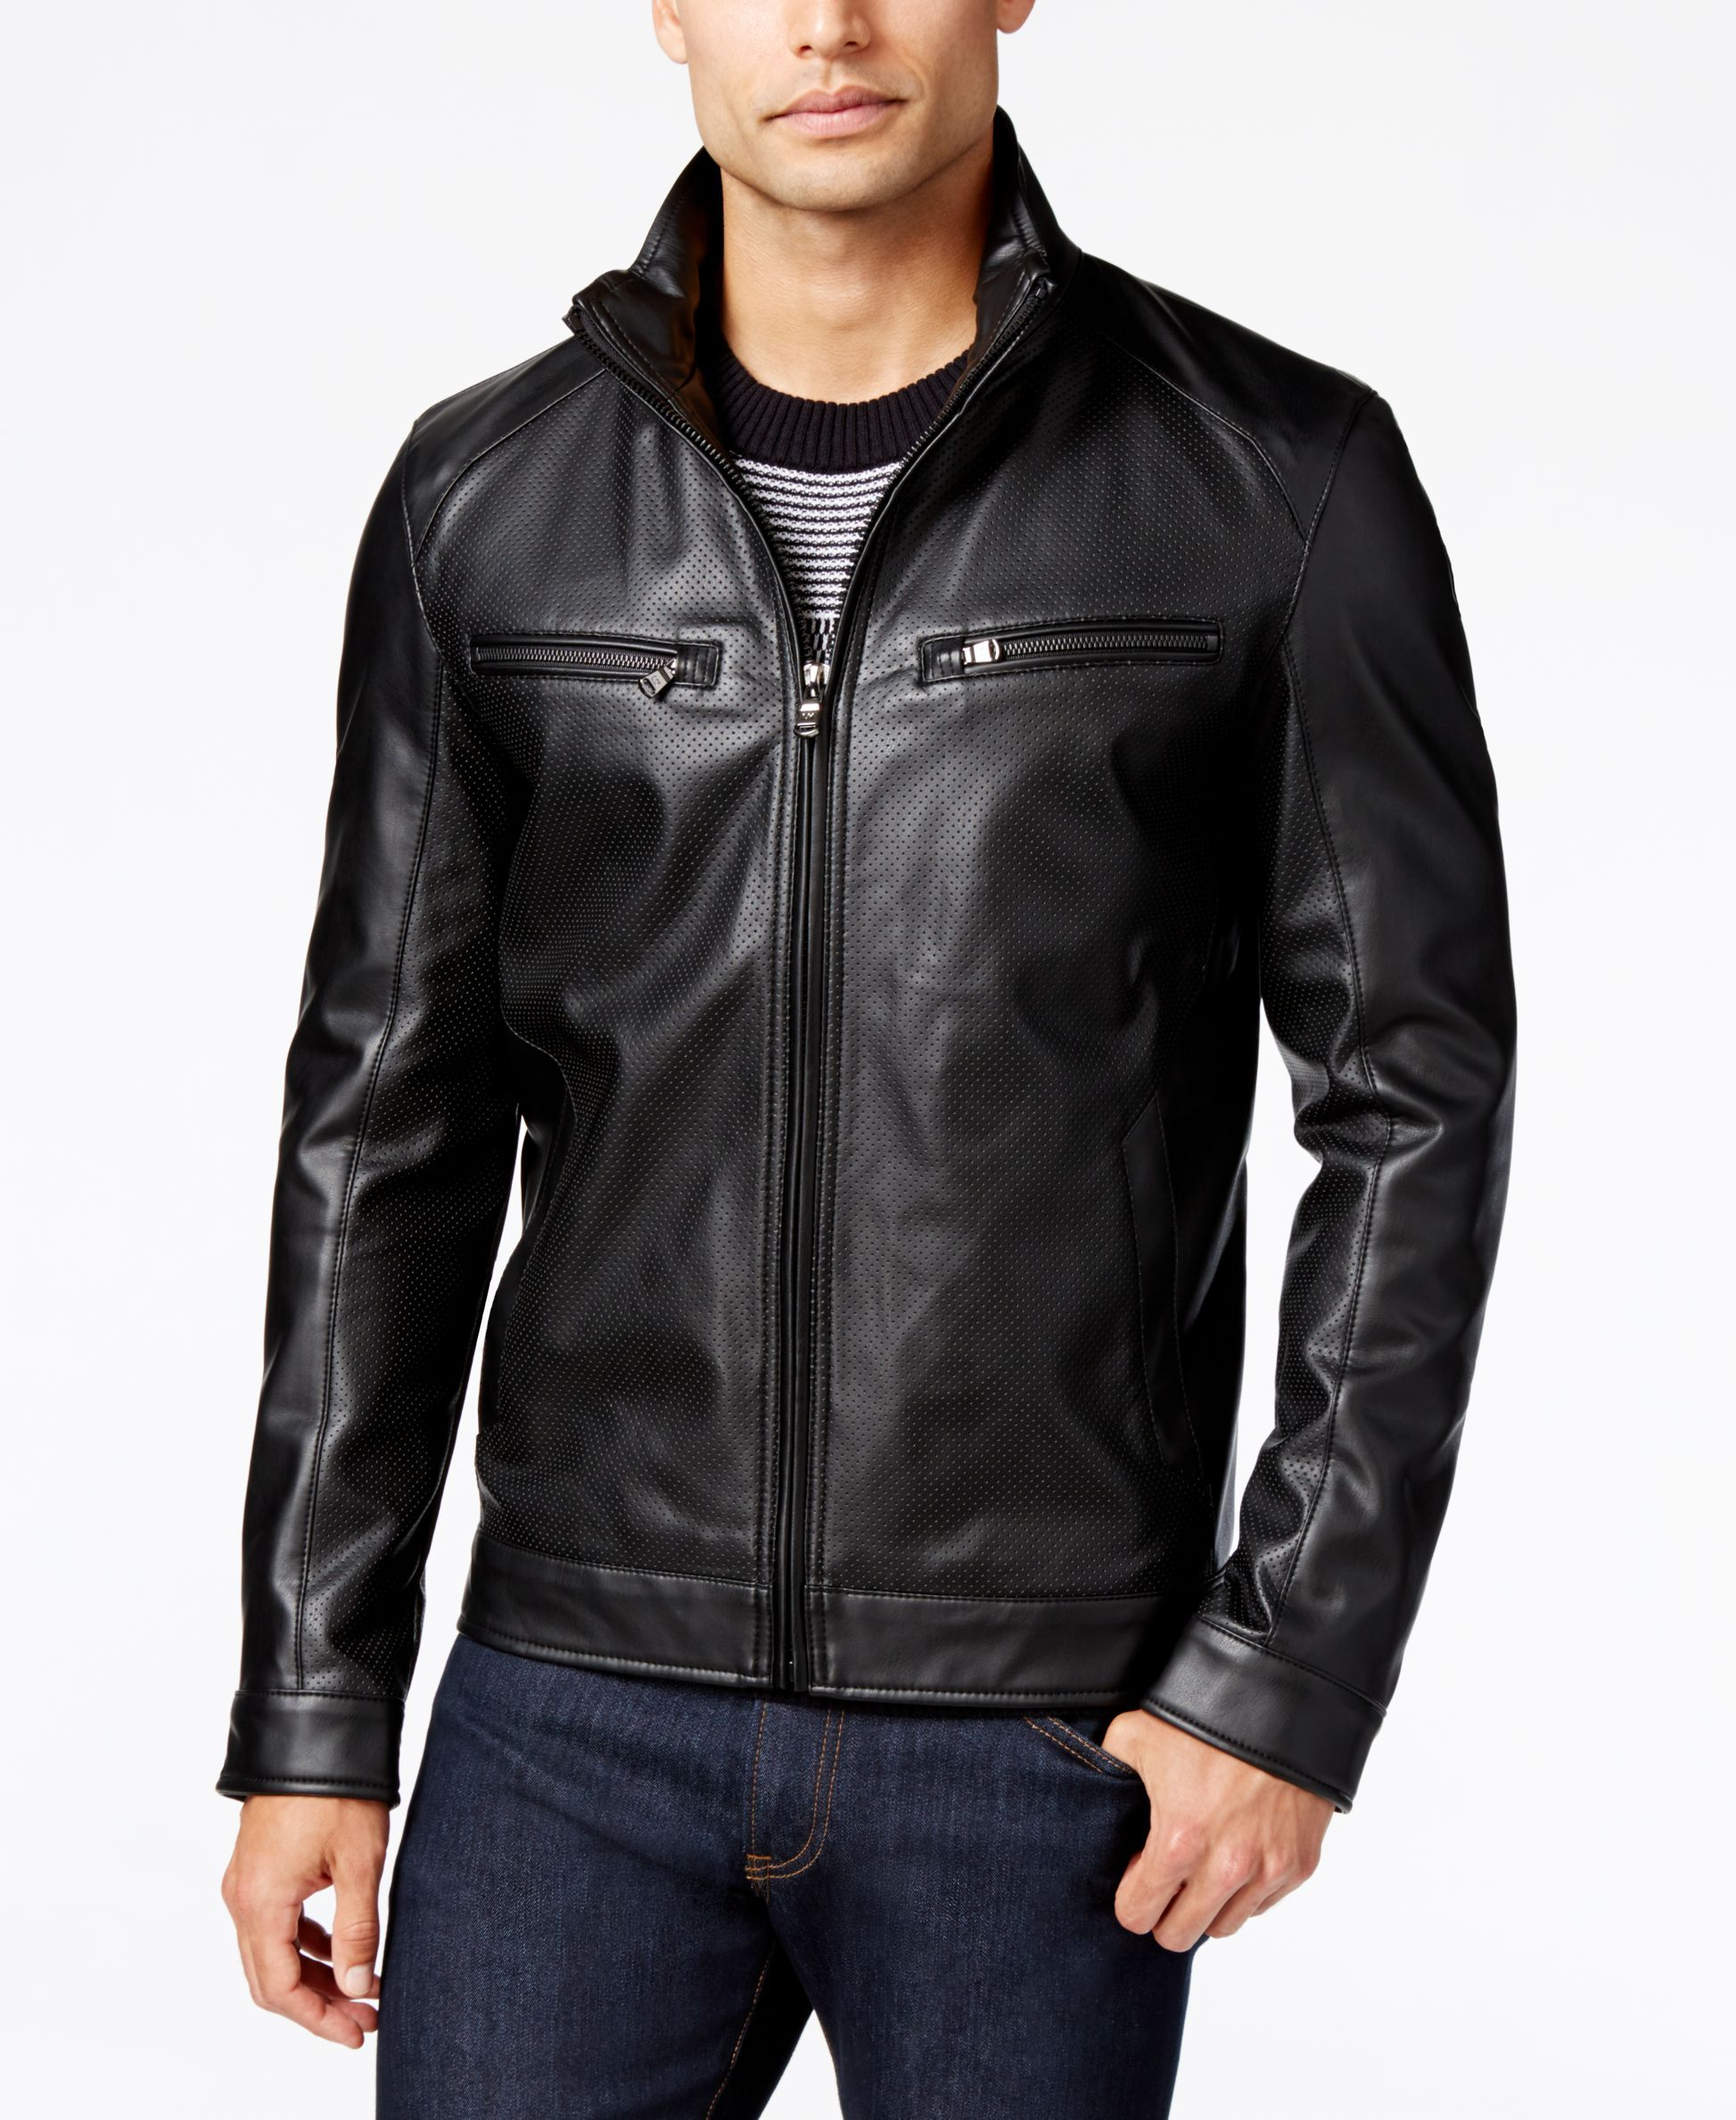 Michael Kors Men's Perforated FauxLeather Moto Jacket